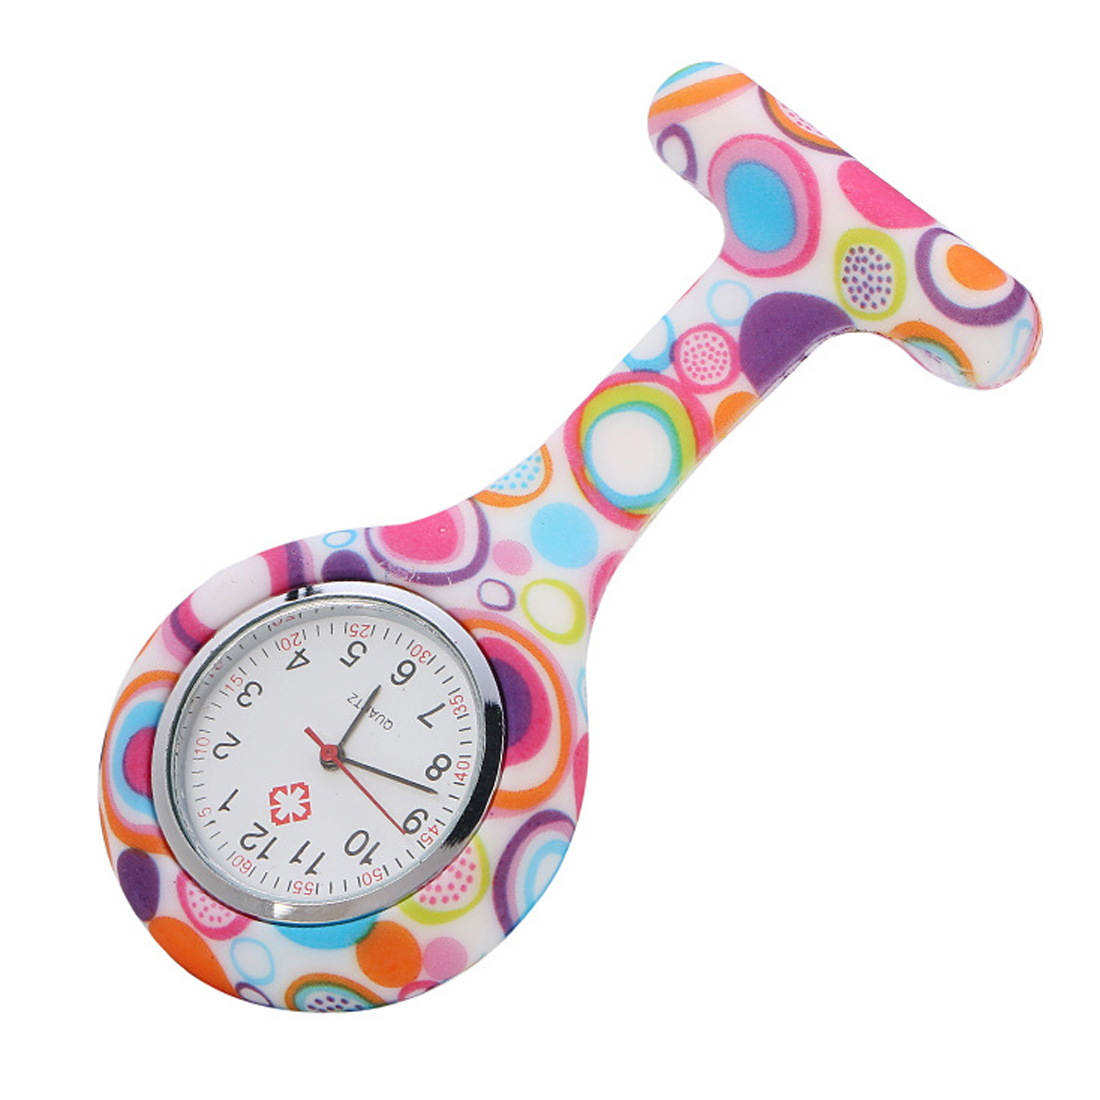 Clip-on Nurses Silicone  Watch Infection Control Hygienic  Pin Fob Brooch Pocket Watch For Women